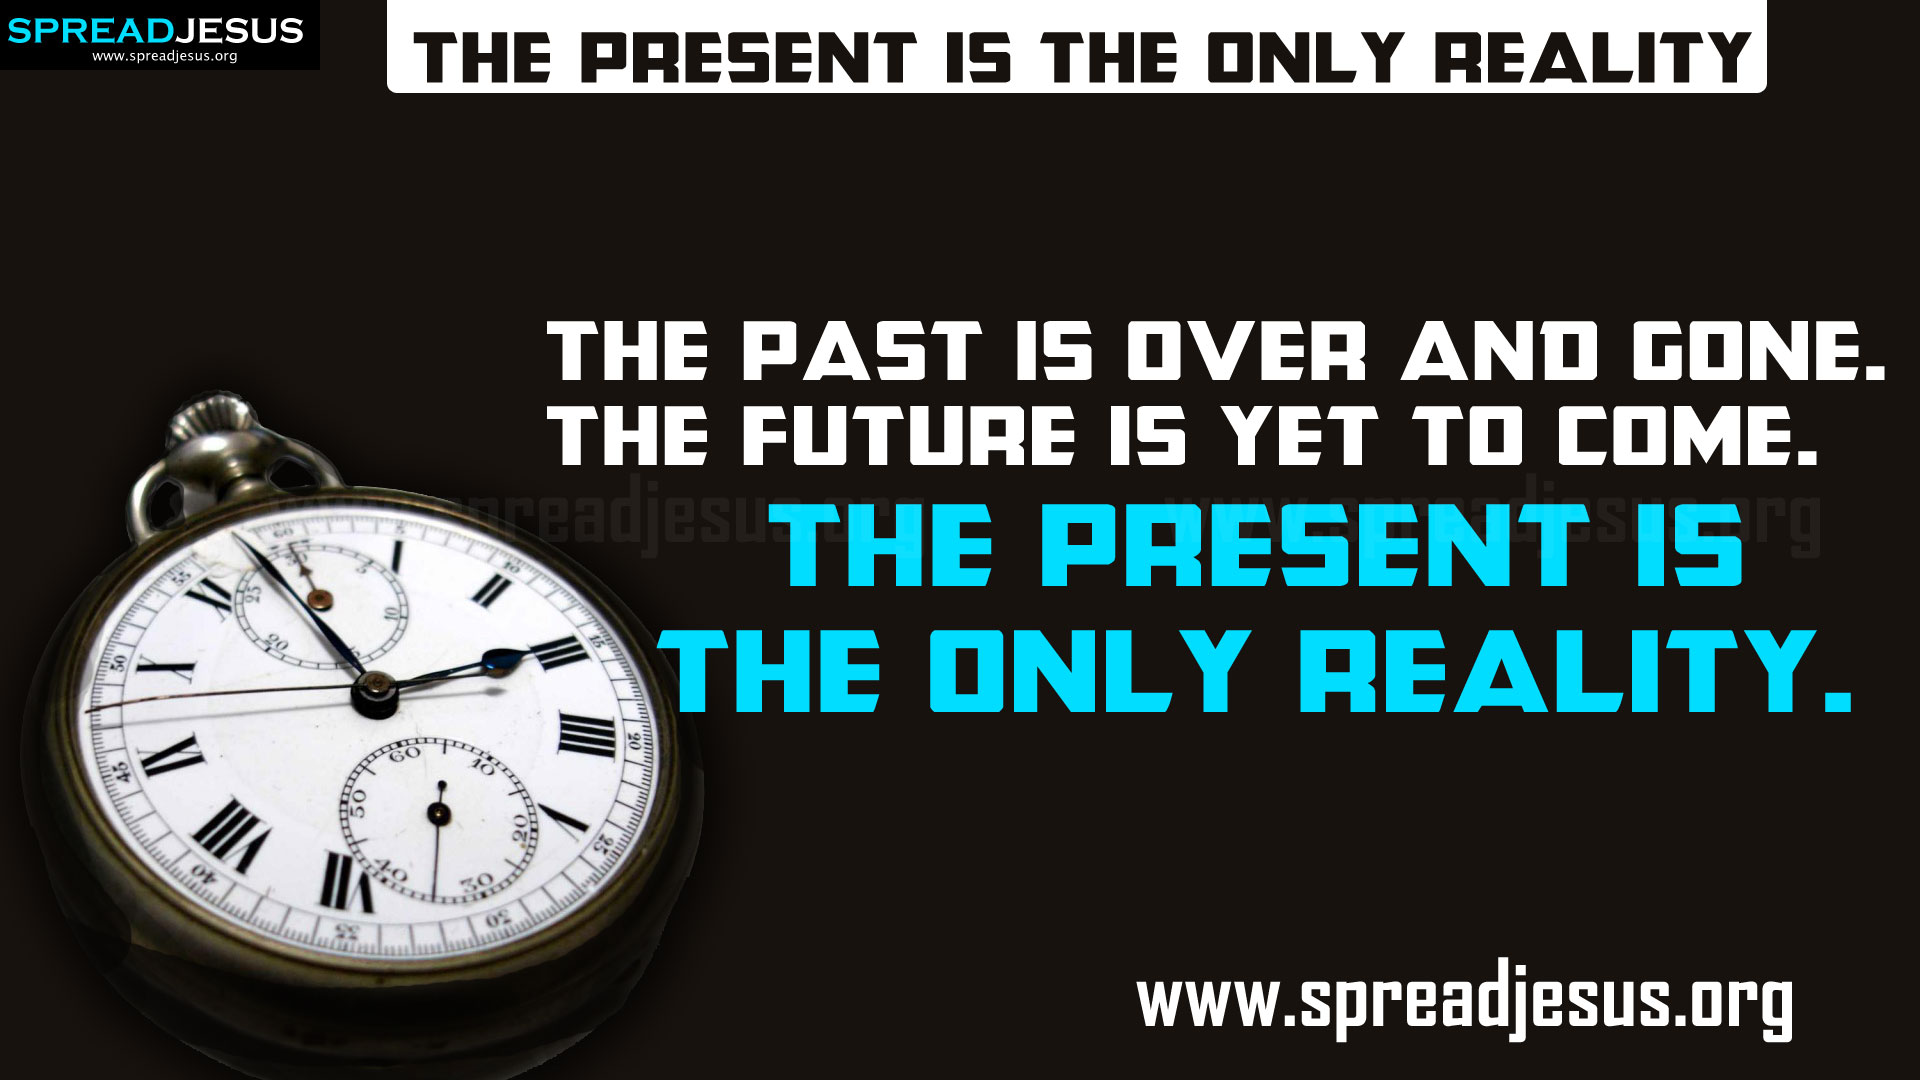 TIME MANAGEMENT QUOTES HD-WALLPAPERS FREE DOWNLOAD The present is the only reality — The past is over and gone.